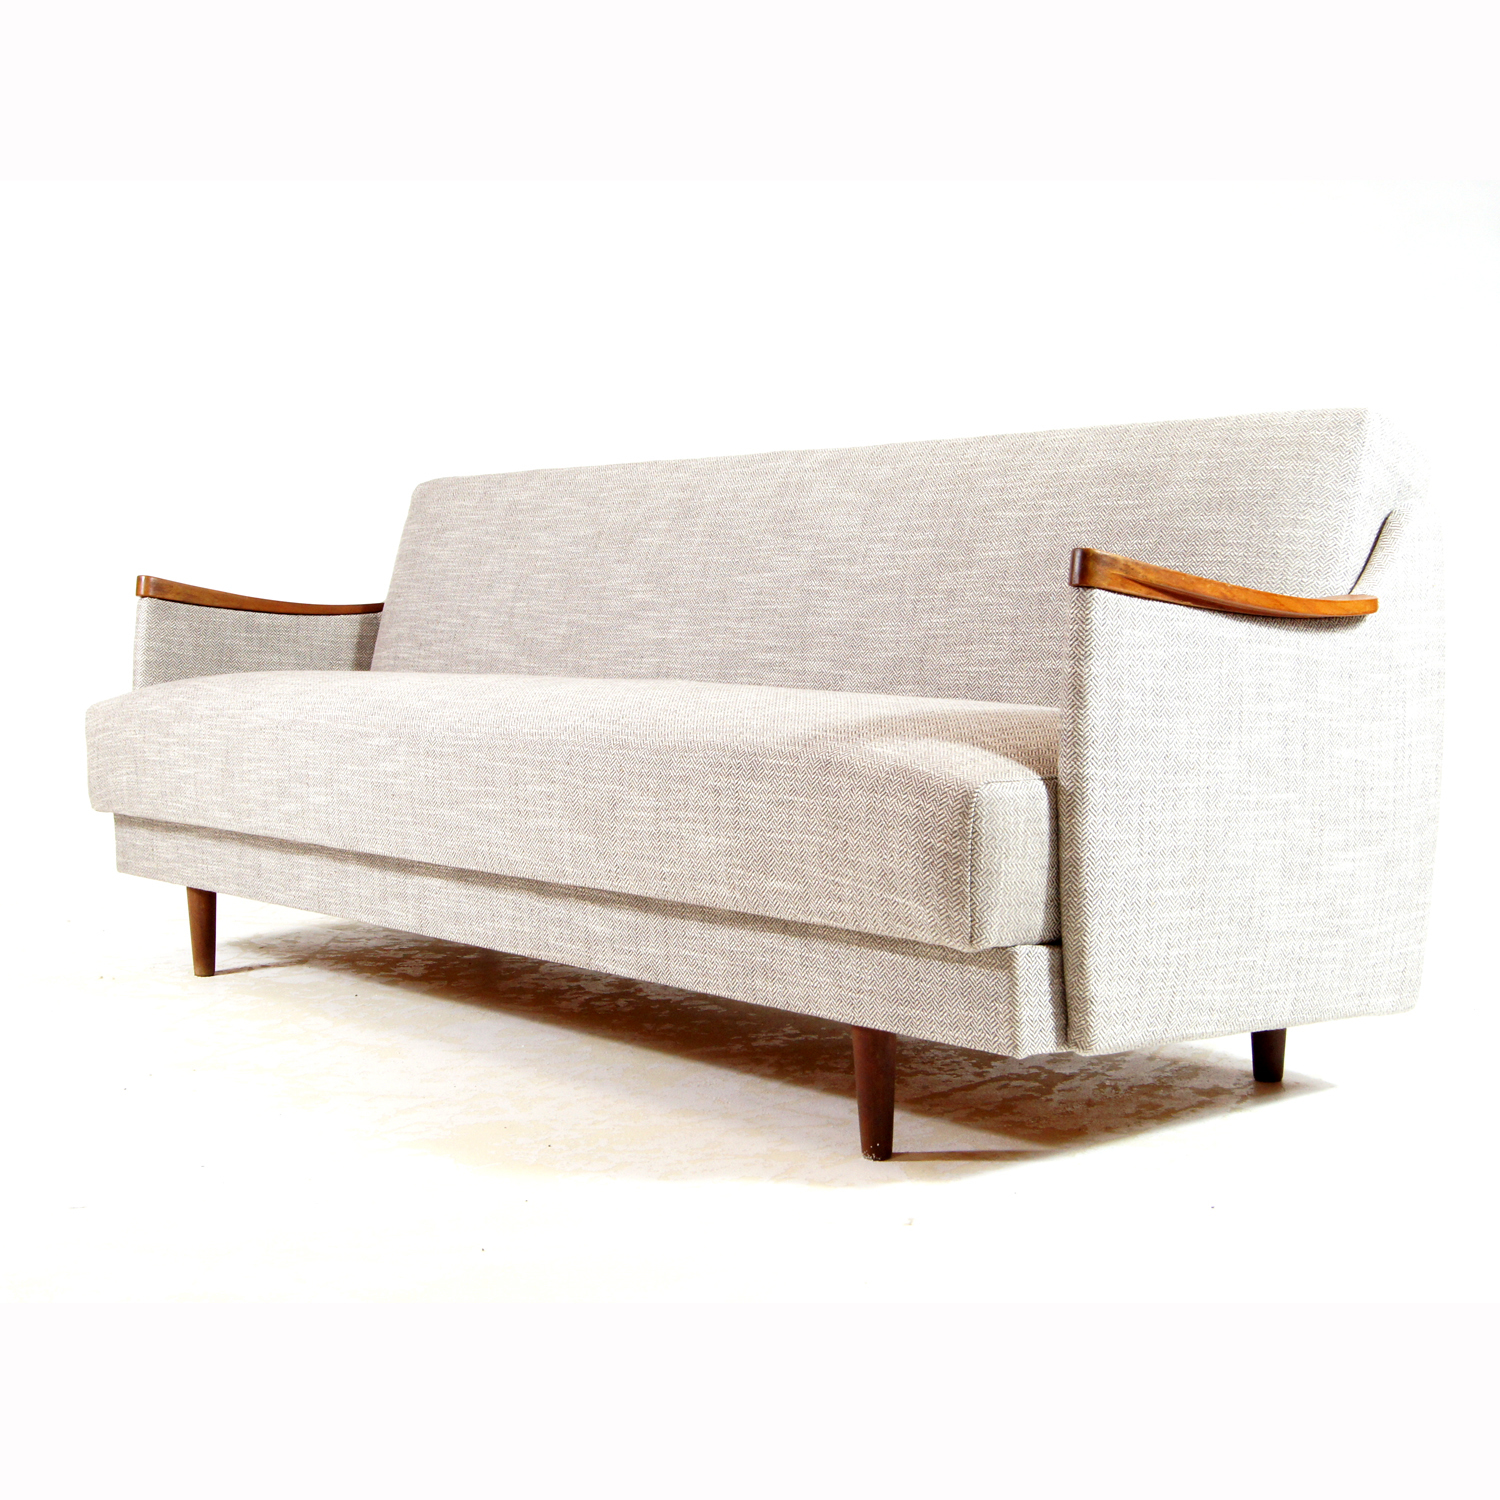 Magnificent Retro Vintage Danish Teak Daybed Double Sofa Bed Studio Couch 50S 60S 70S Futon Onthecornerstone Fun Painted Chair Ideas Images Onthecornerstoneorg